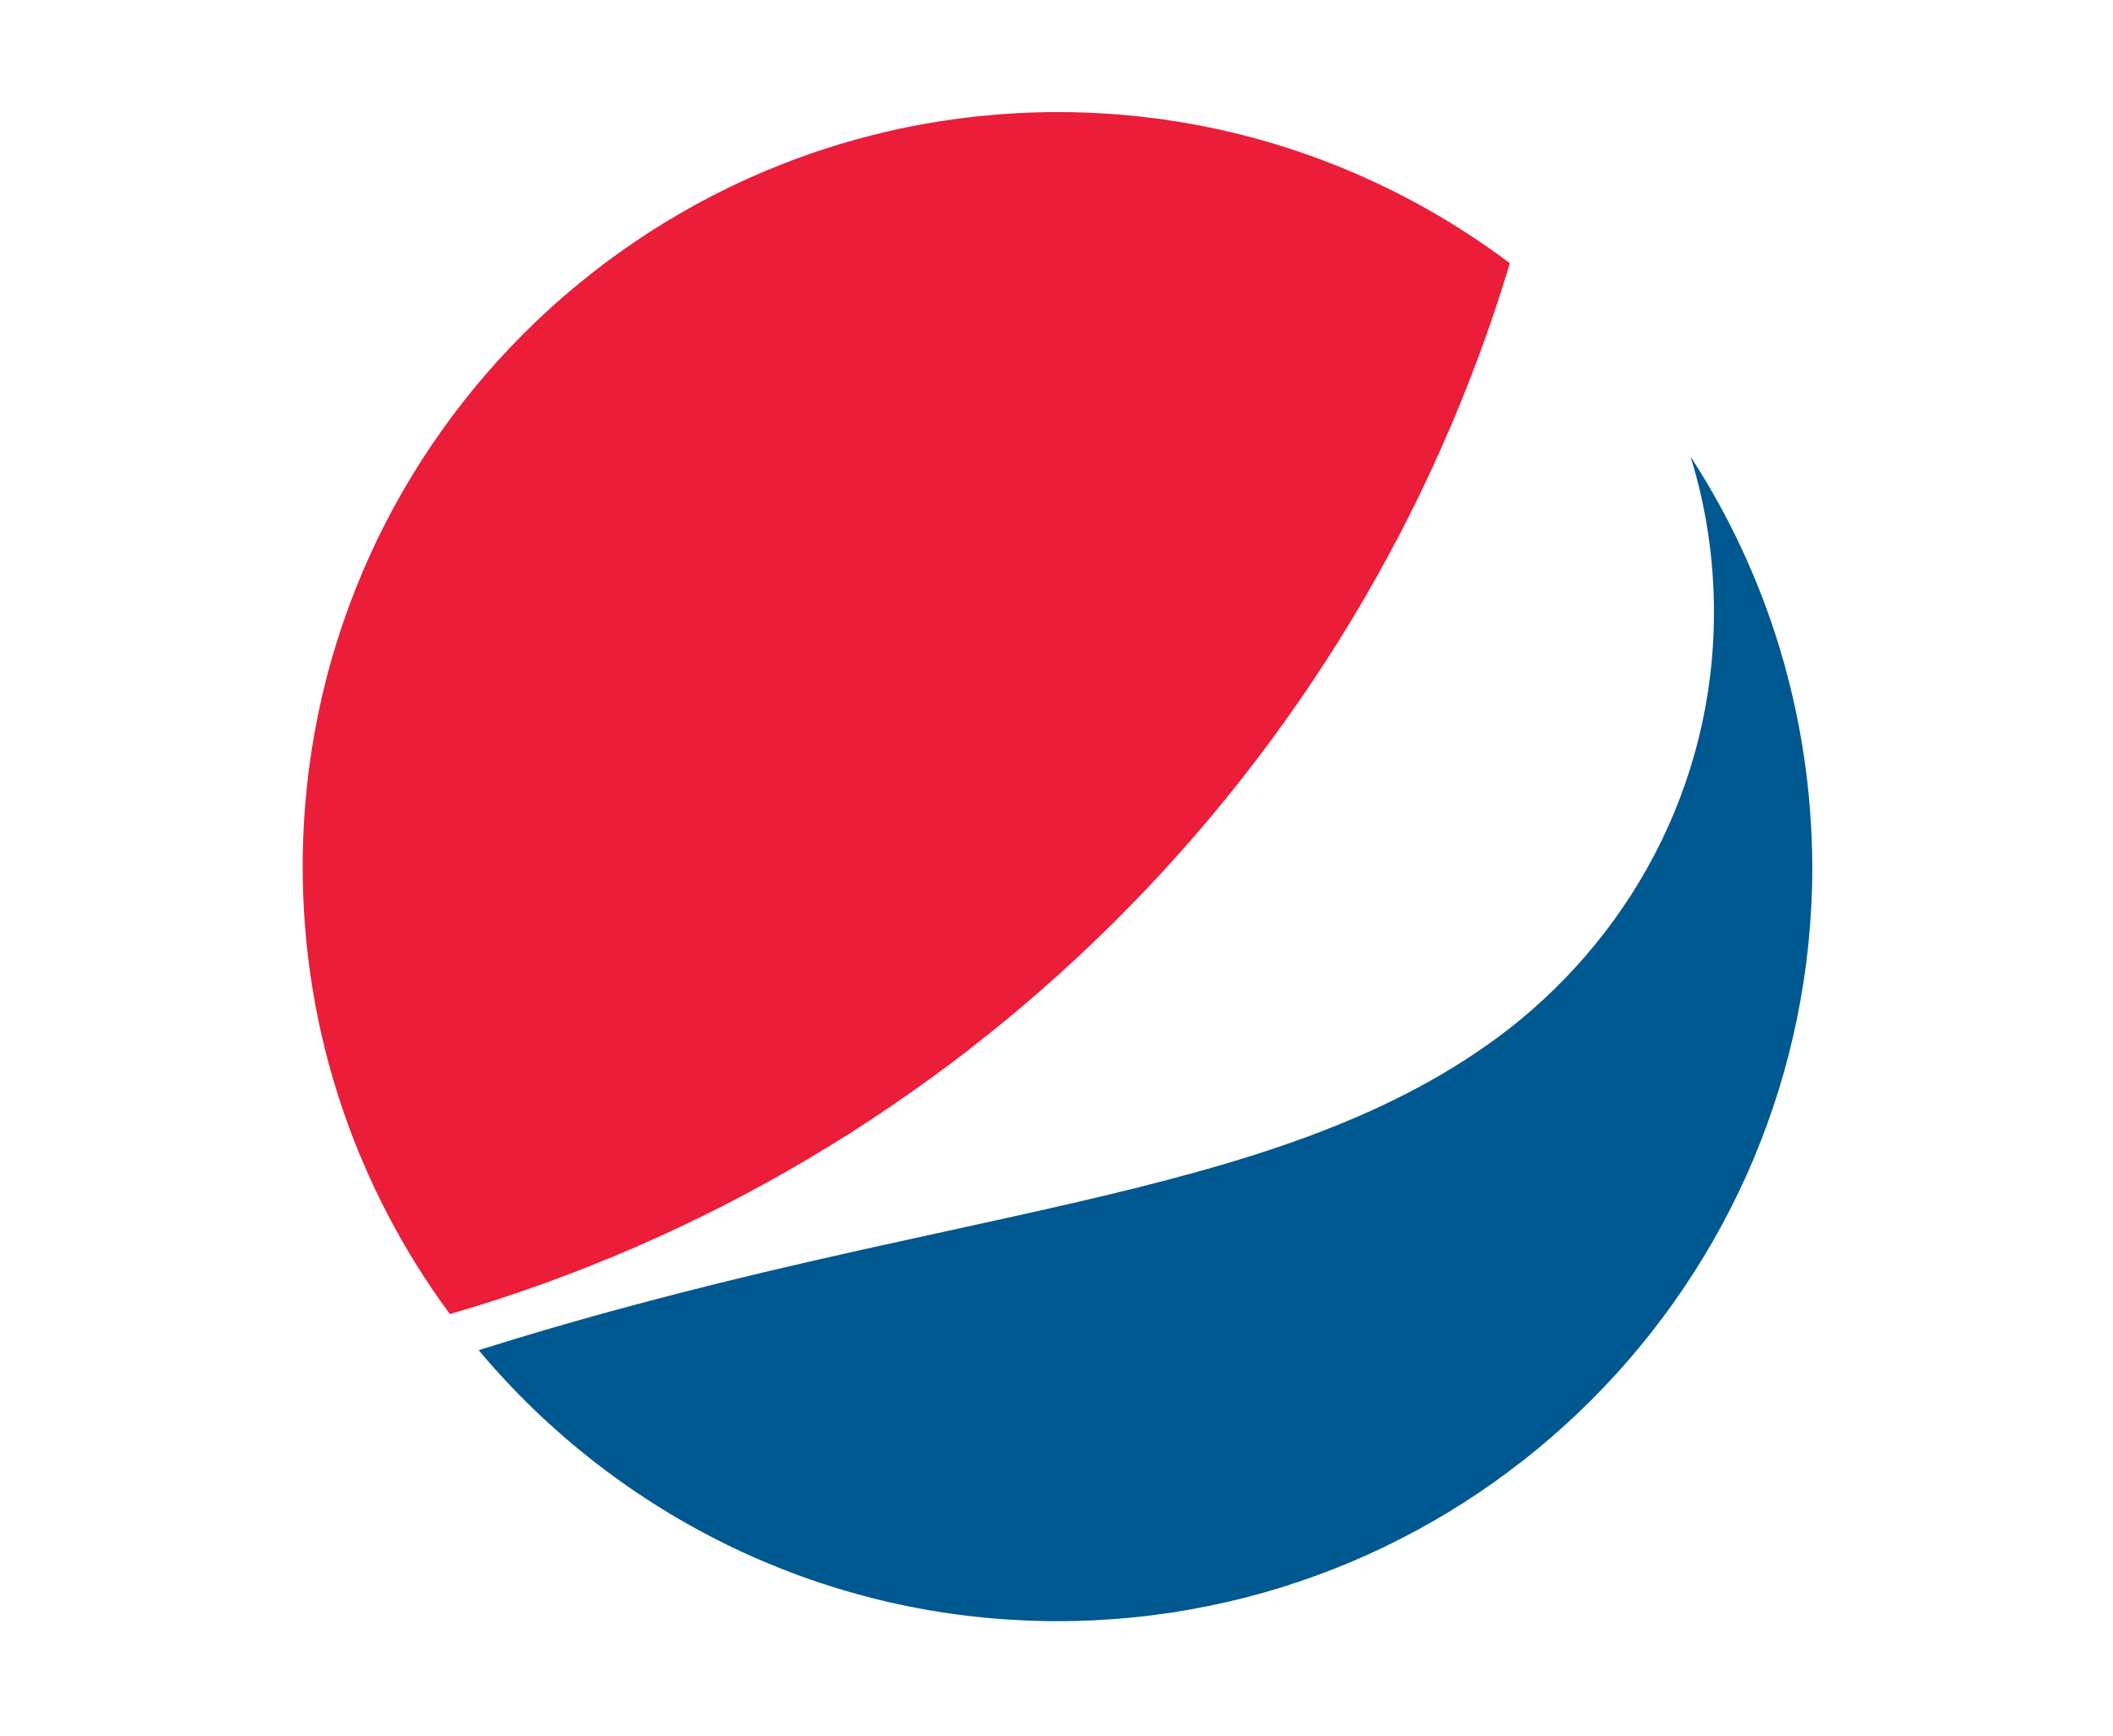 Pepsi Logo - Pepsi Logo, Pepsi Symbol, Meaning, History and Evolution